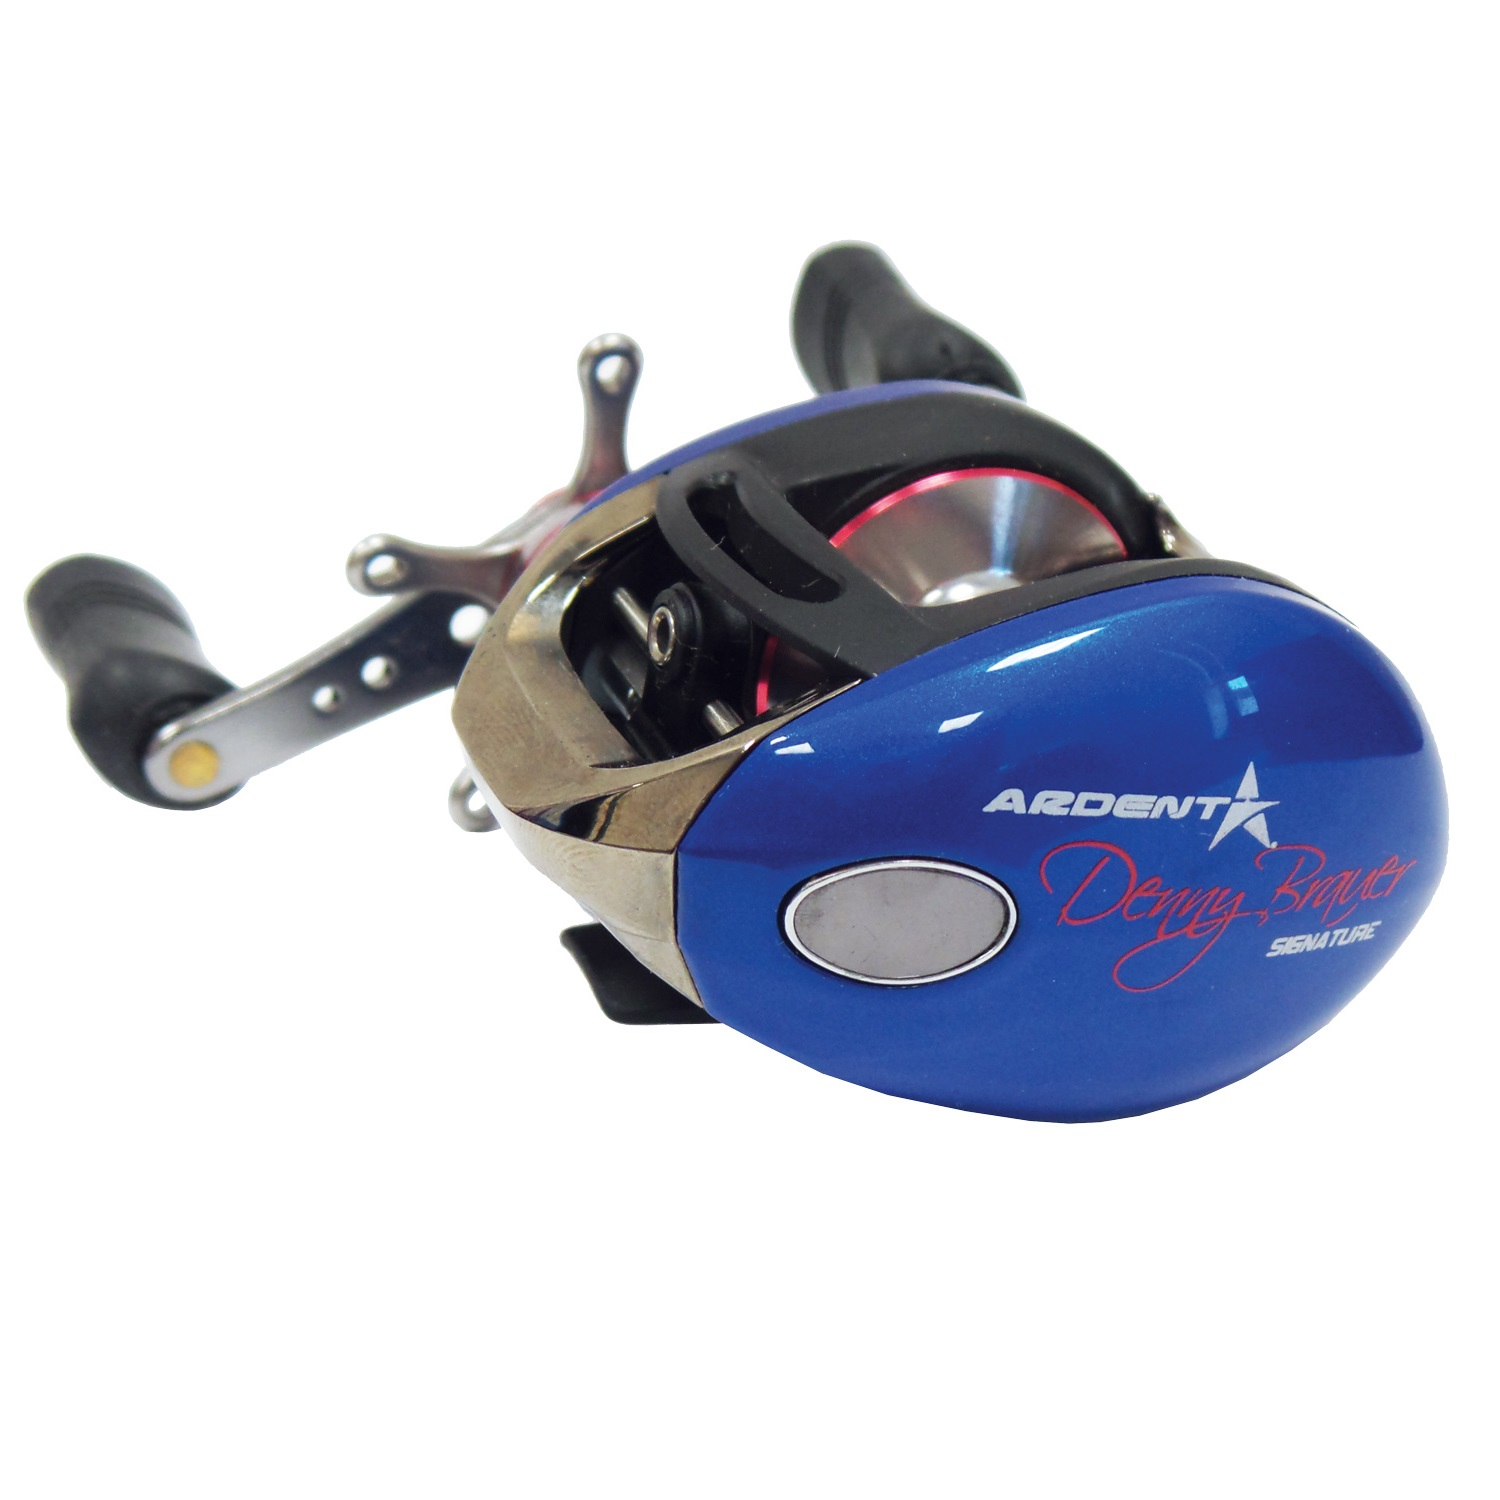 Ardent denny brauer horizon baitcast reel 7 0 1 right hand for Ardent fishing reels